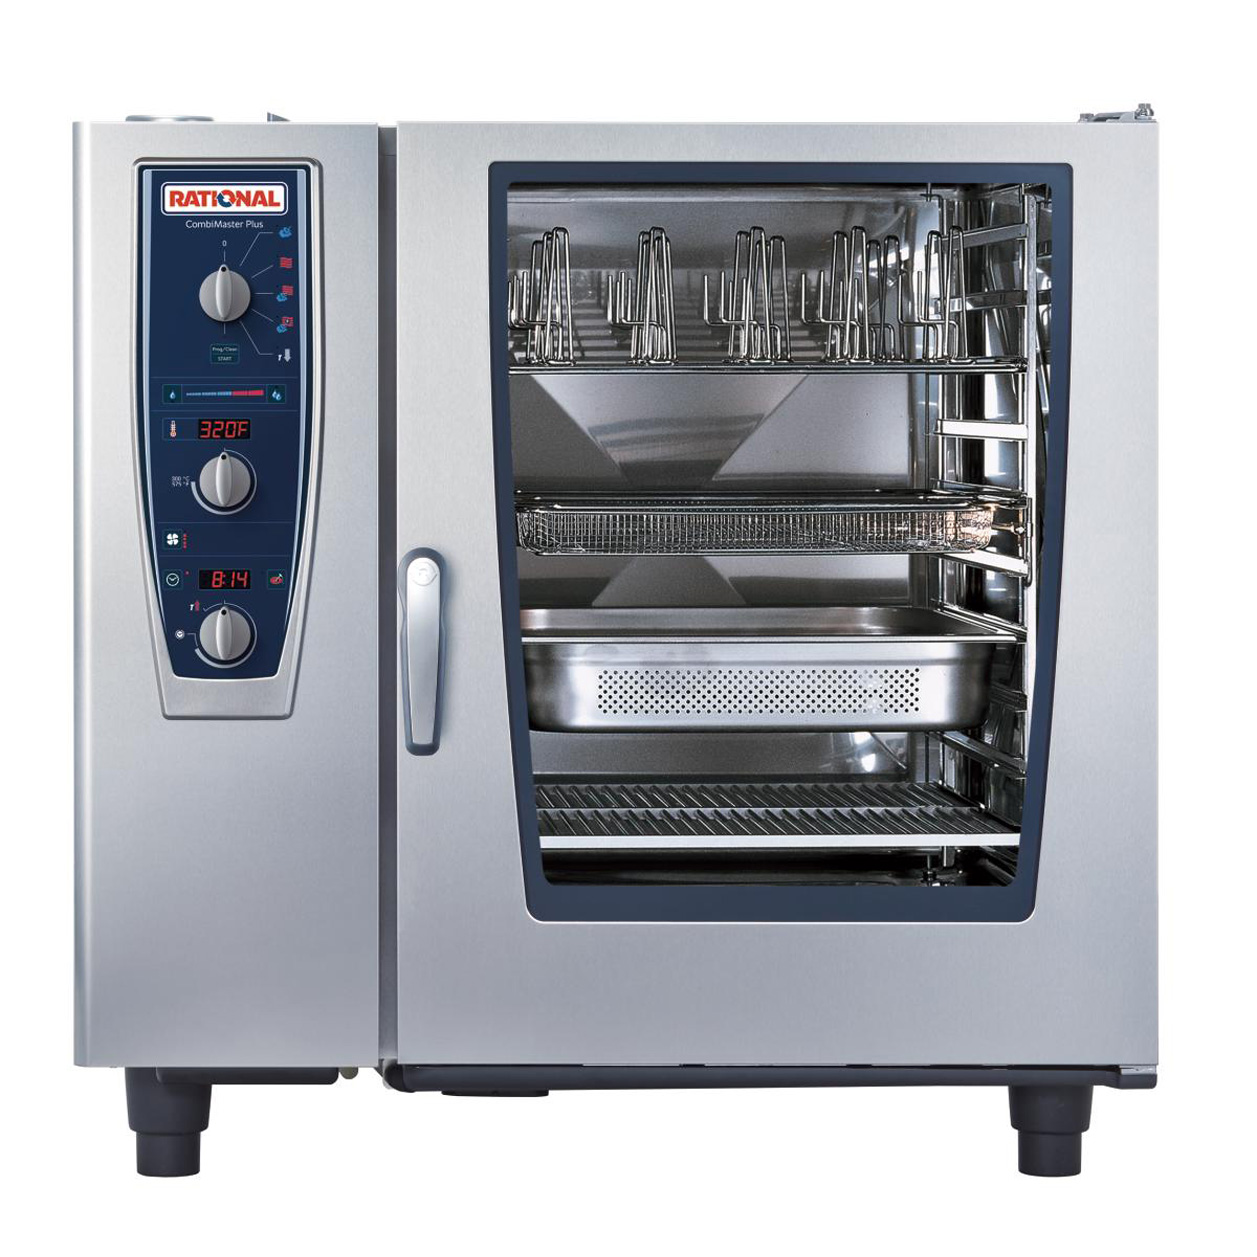 RATIONAL B129106.43.202 combi oven, electric